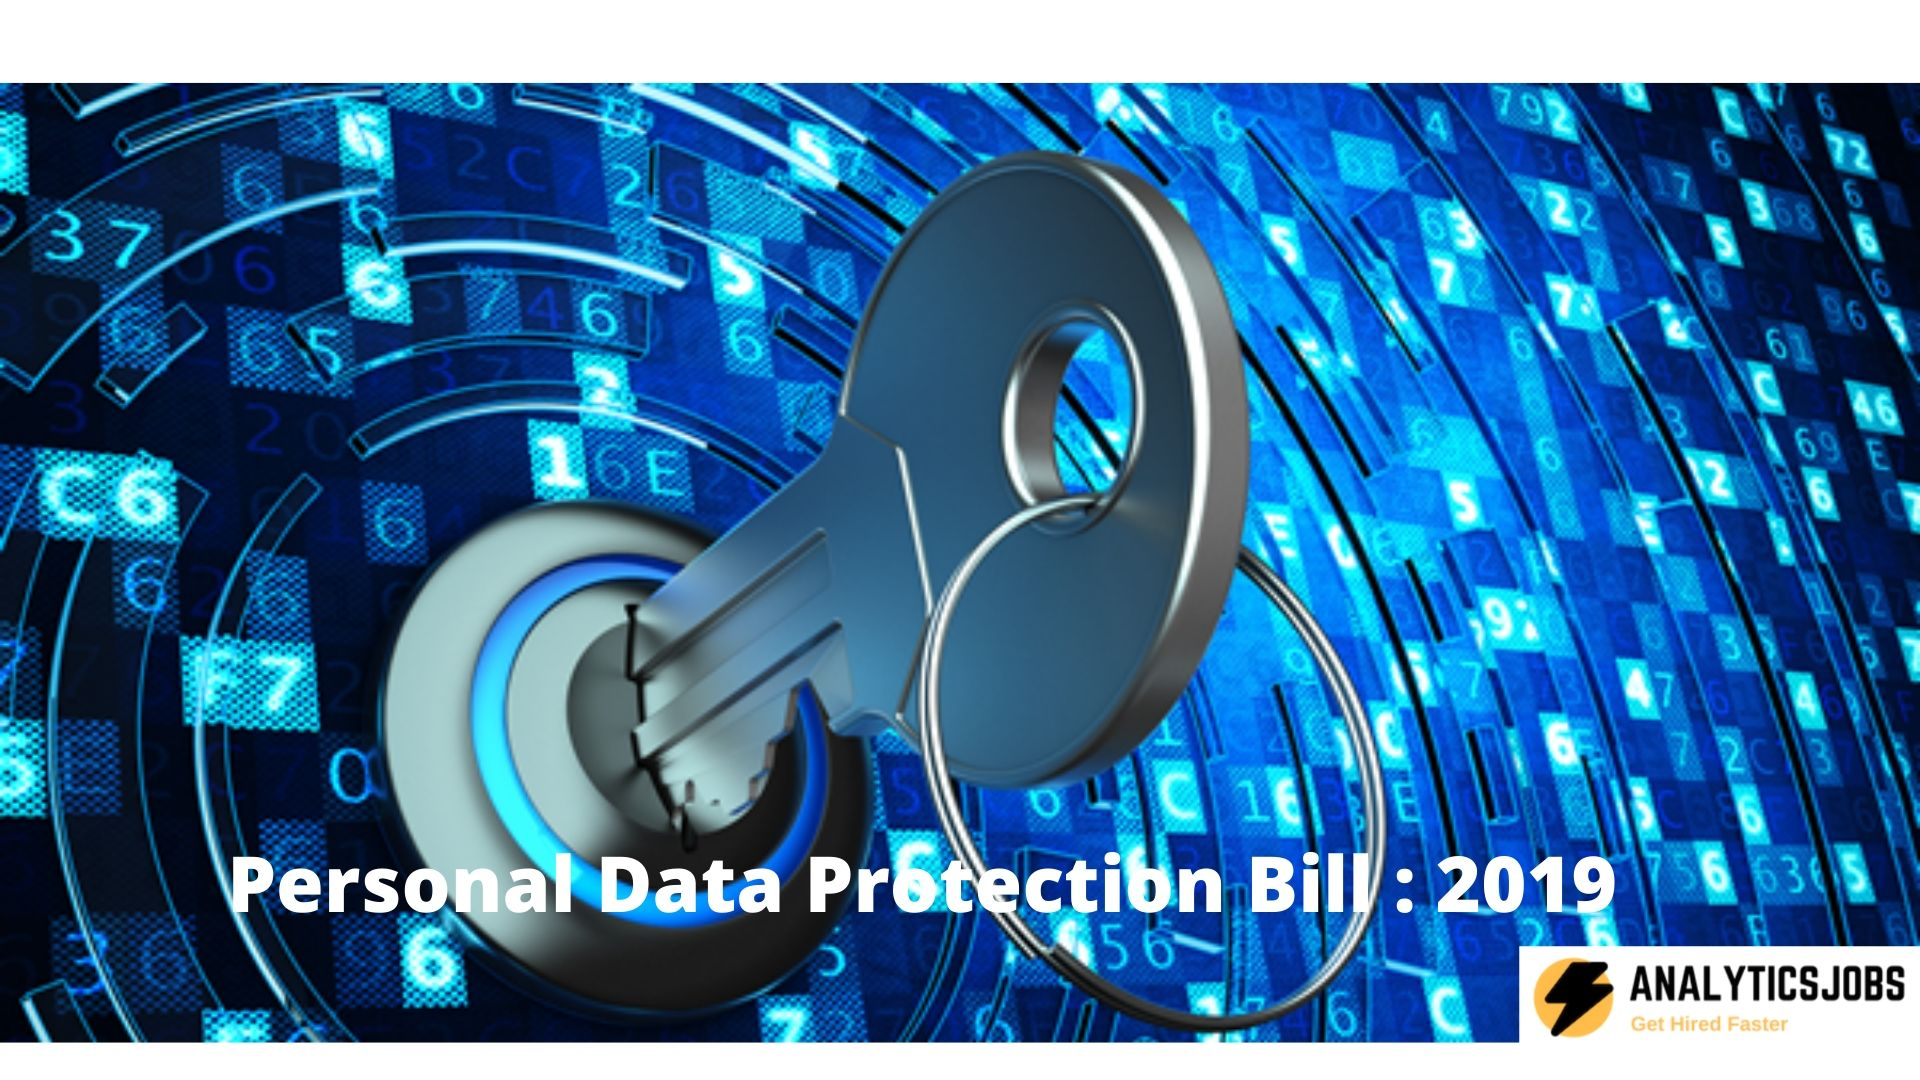 Regulation rather than protection is the right term in Personal Data Protection